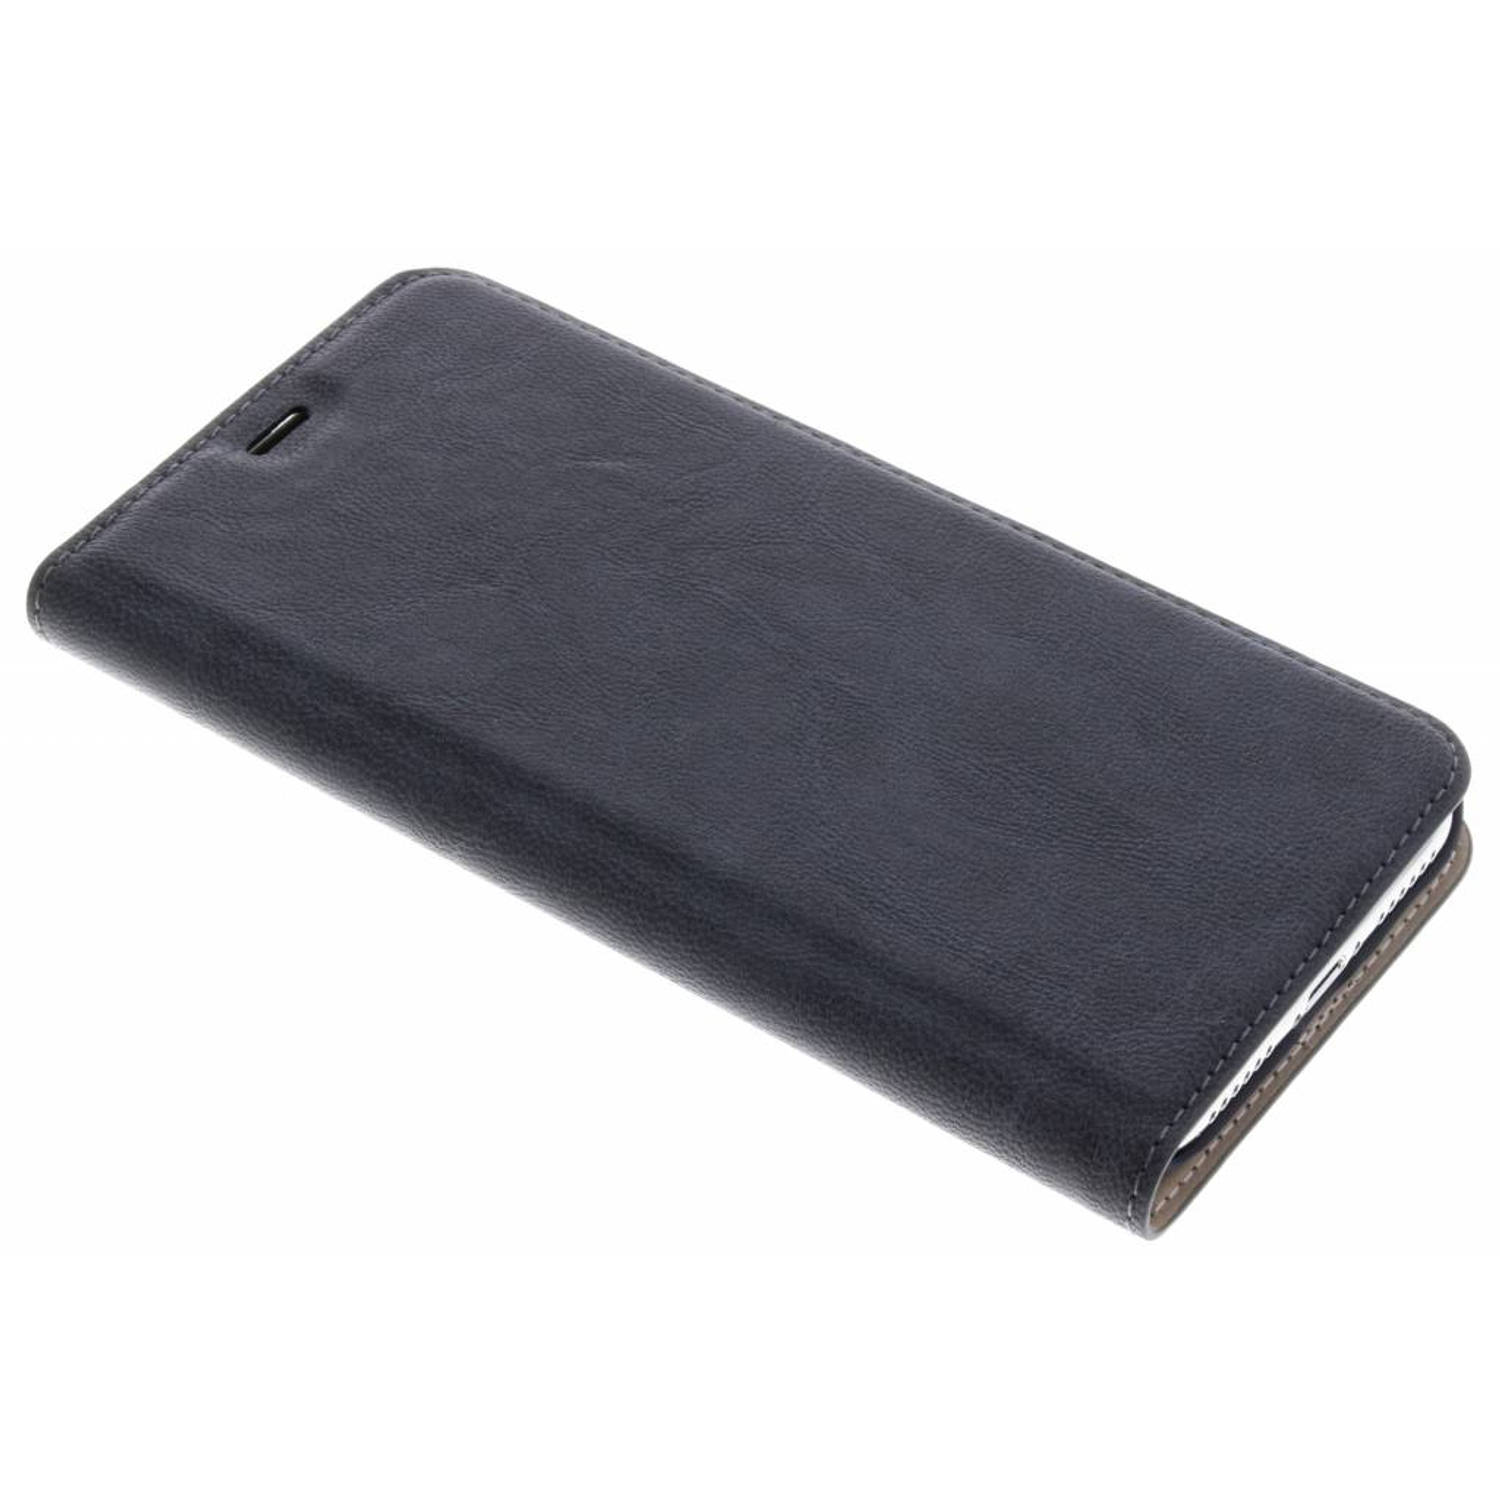 Blauwe Guard Booklet Case voor de iPhone Xs / X